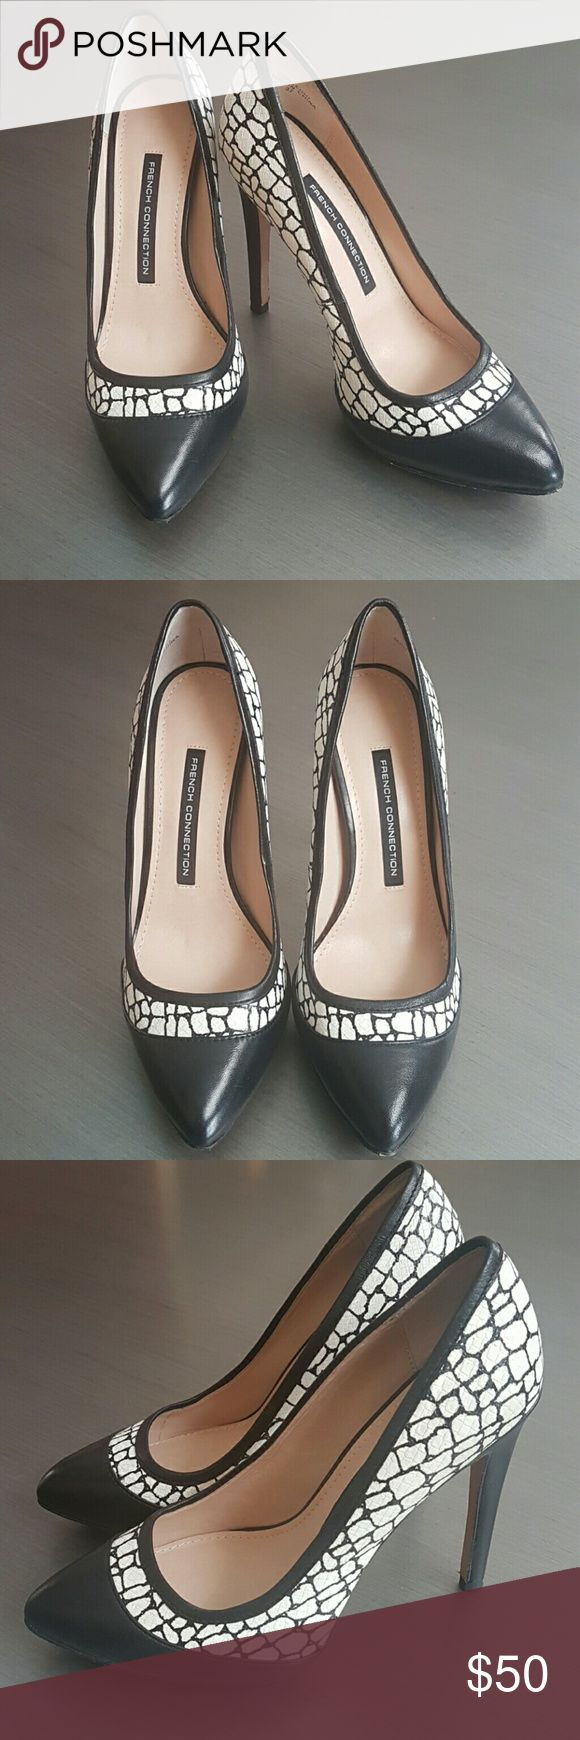 "French Connection Black and White Pumps In excellent, like new condition. Only worn once. 4.75"" heel height. Very comfortable even with higher heel height. Listed size is 37, I'm a true 6.5 and it fits me perfectly. French Connection Shoes Heels"